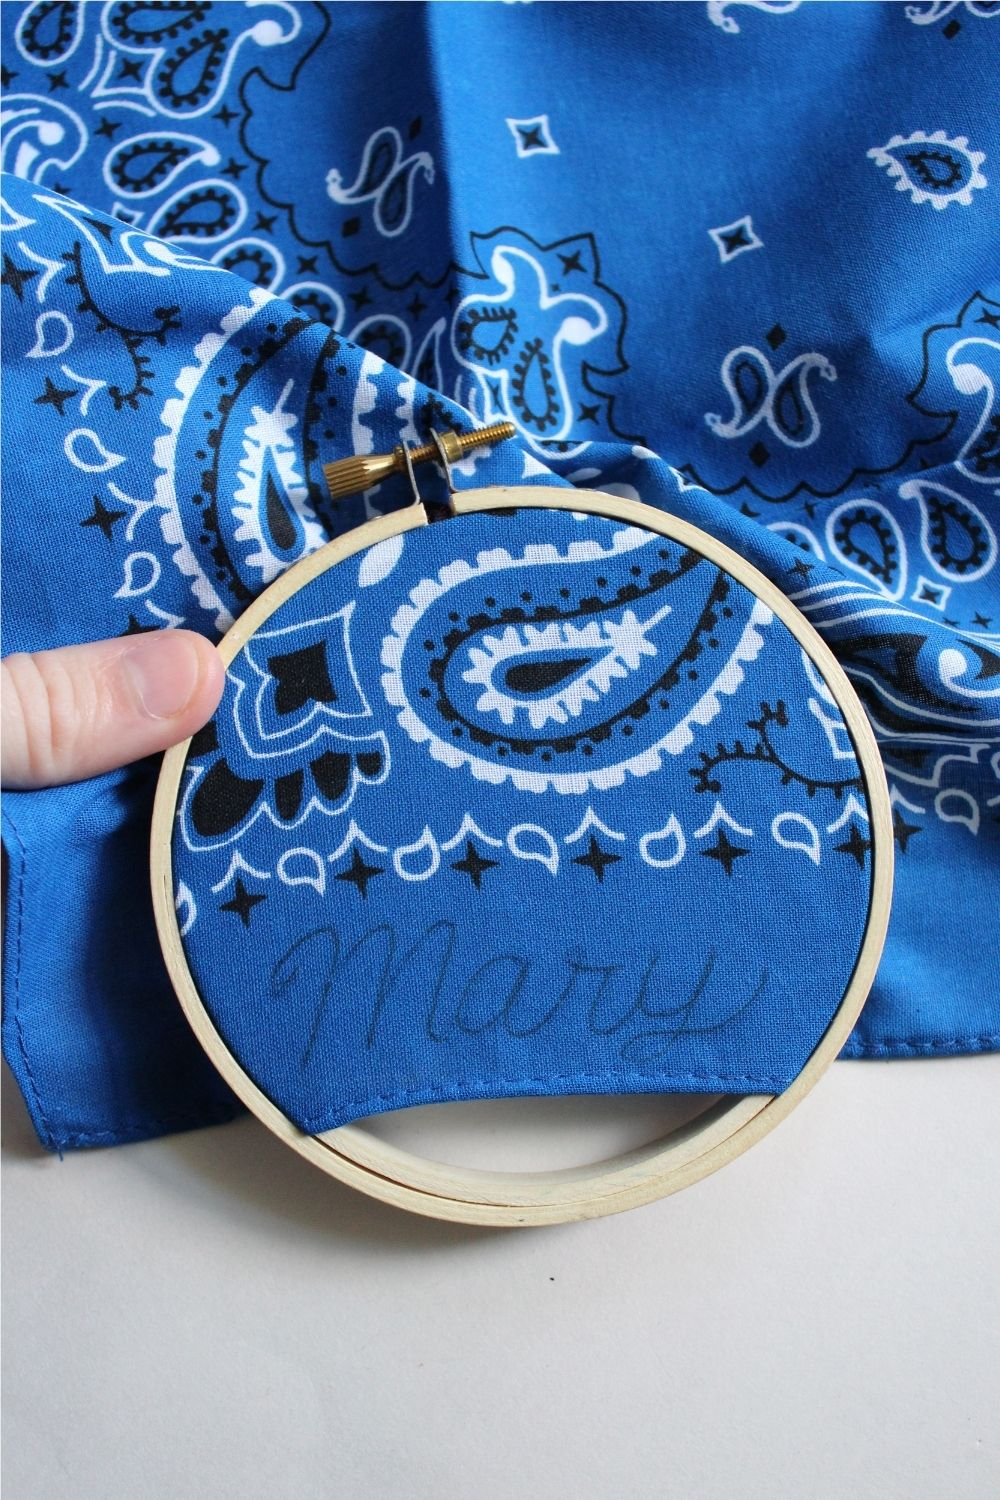 place handkerchief in the embroidery hoop